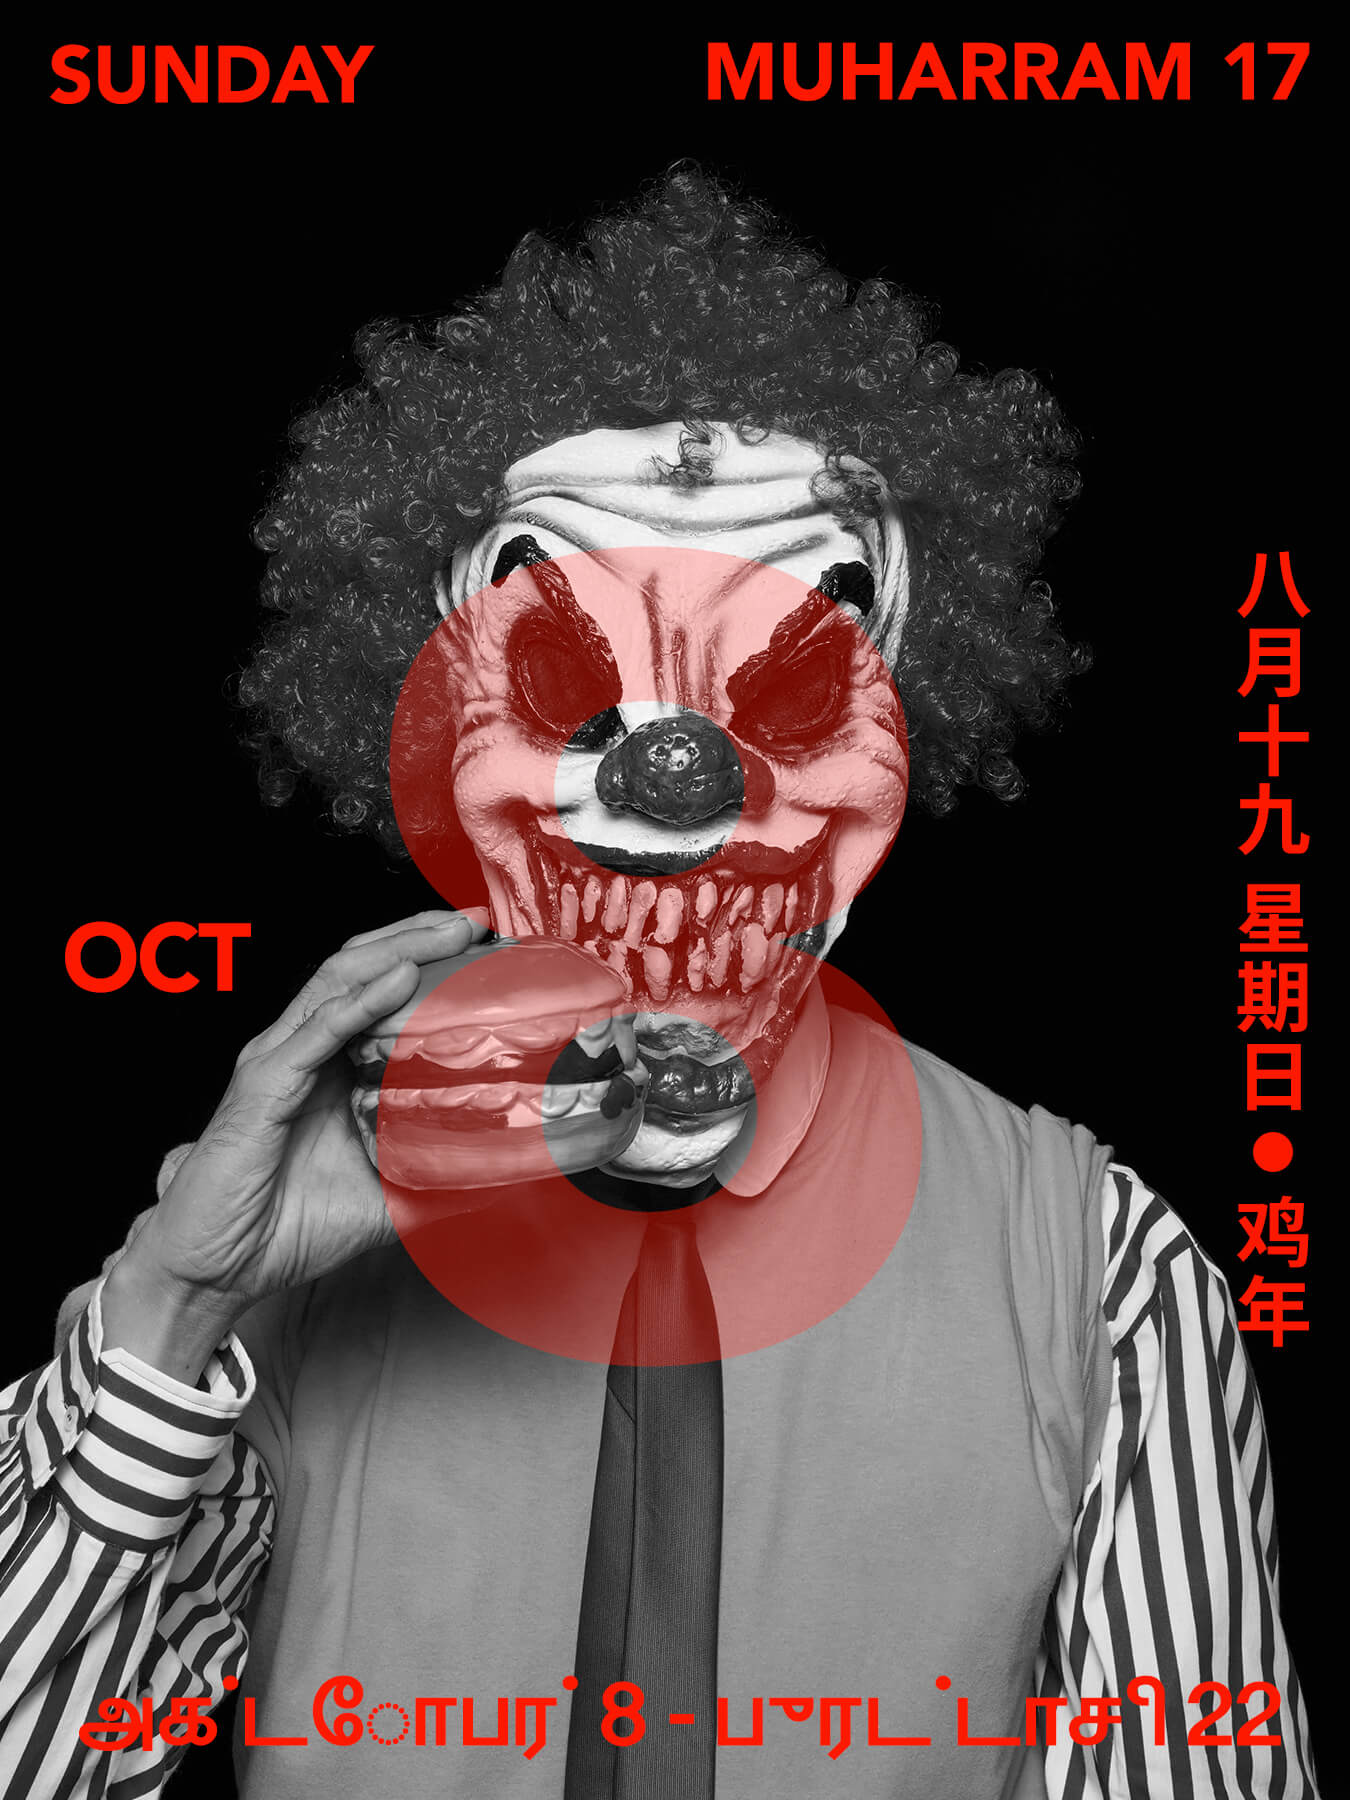 8 Oct 2017 HAPPY MEAL: Derong is dressed like Ronald McDonald and wearing a scary clown mask